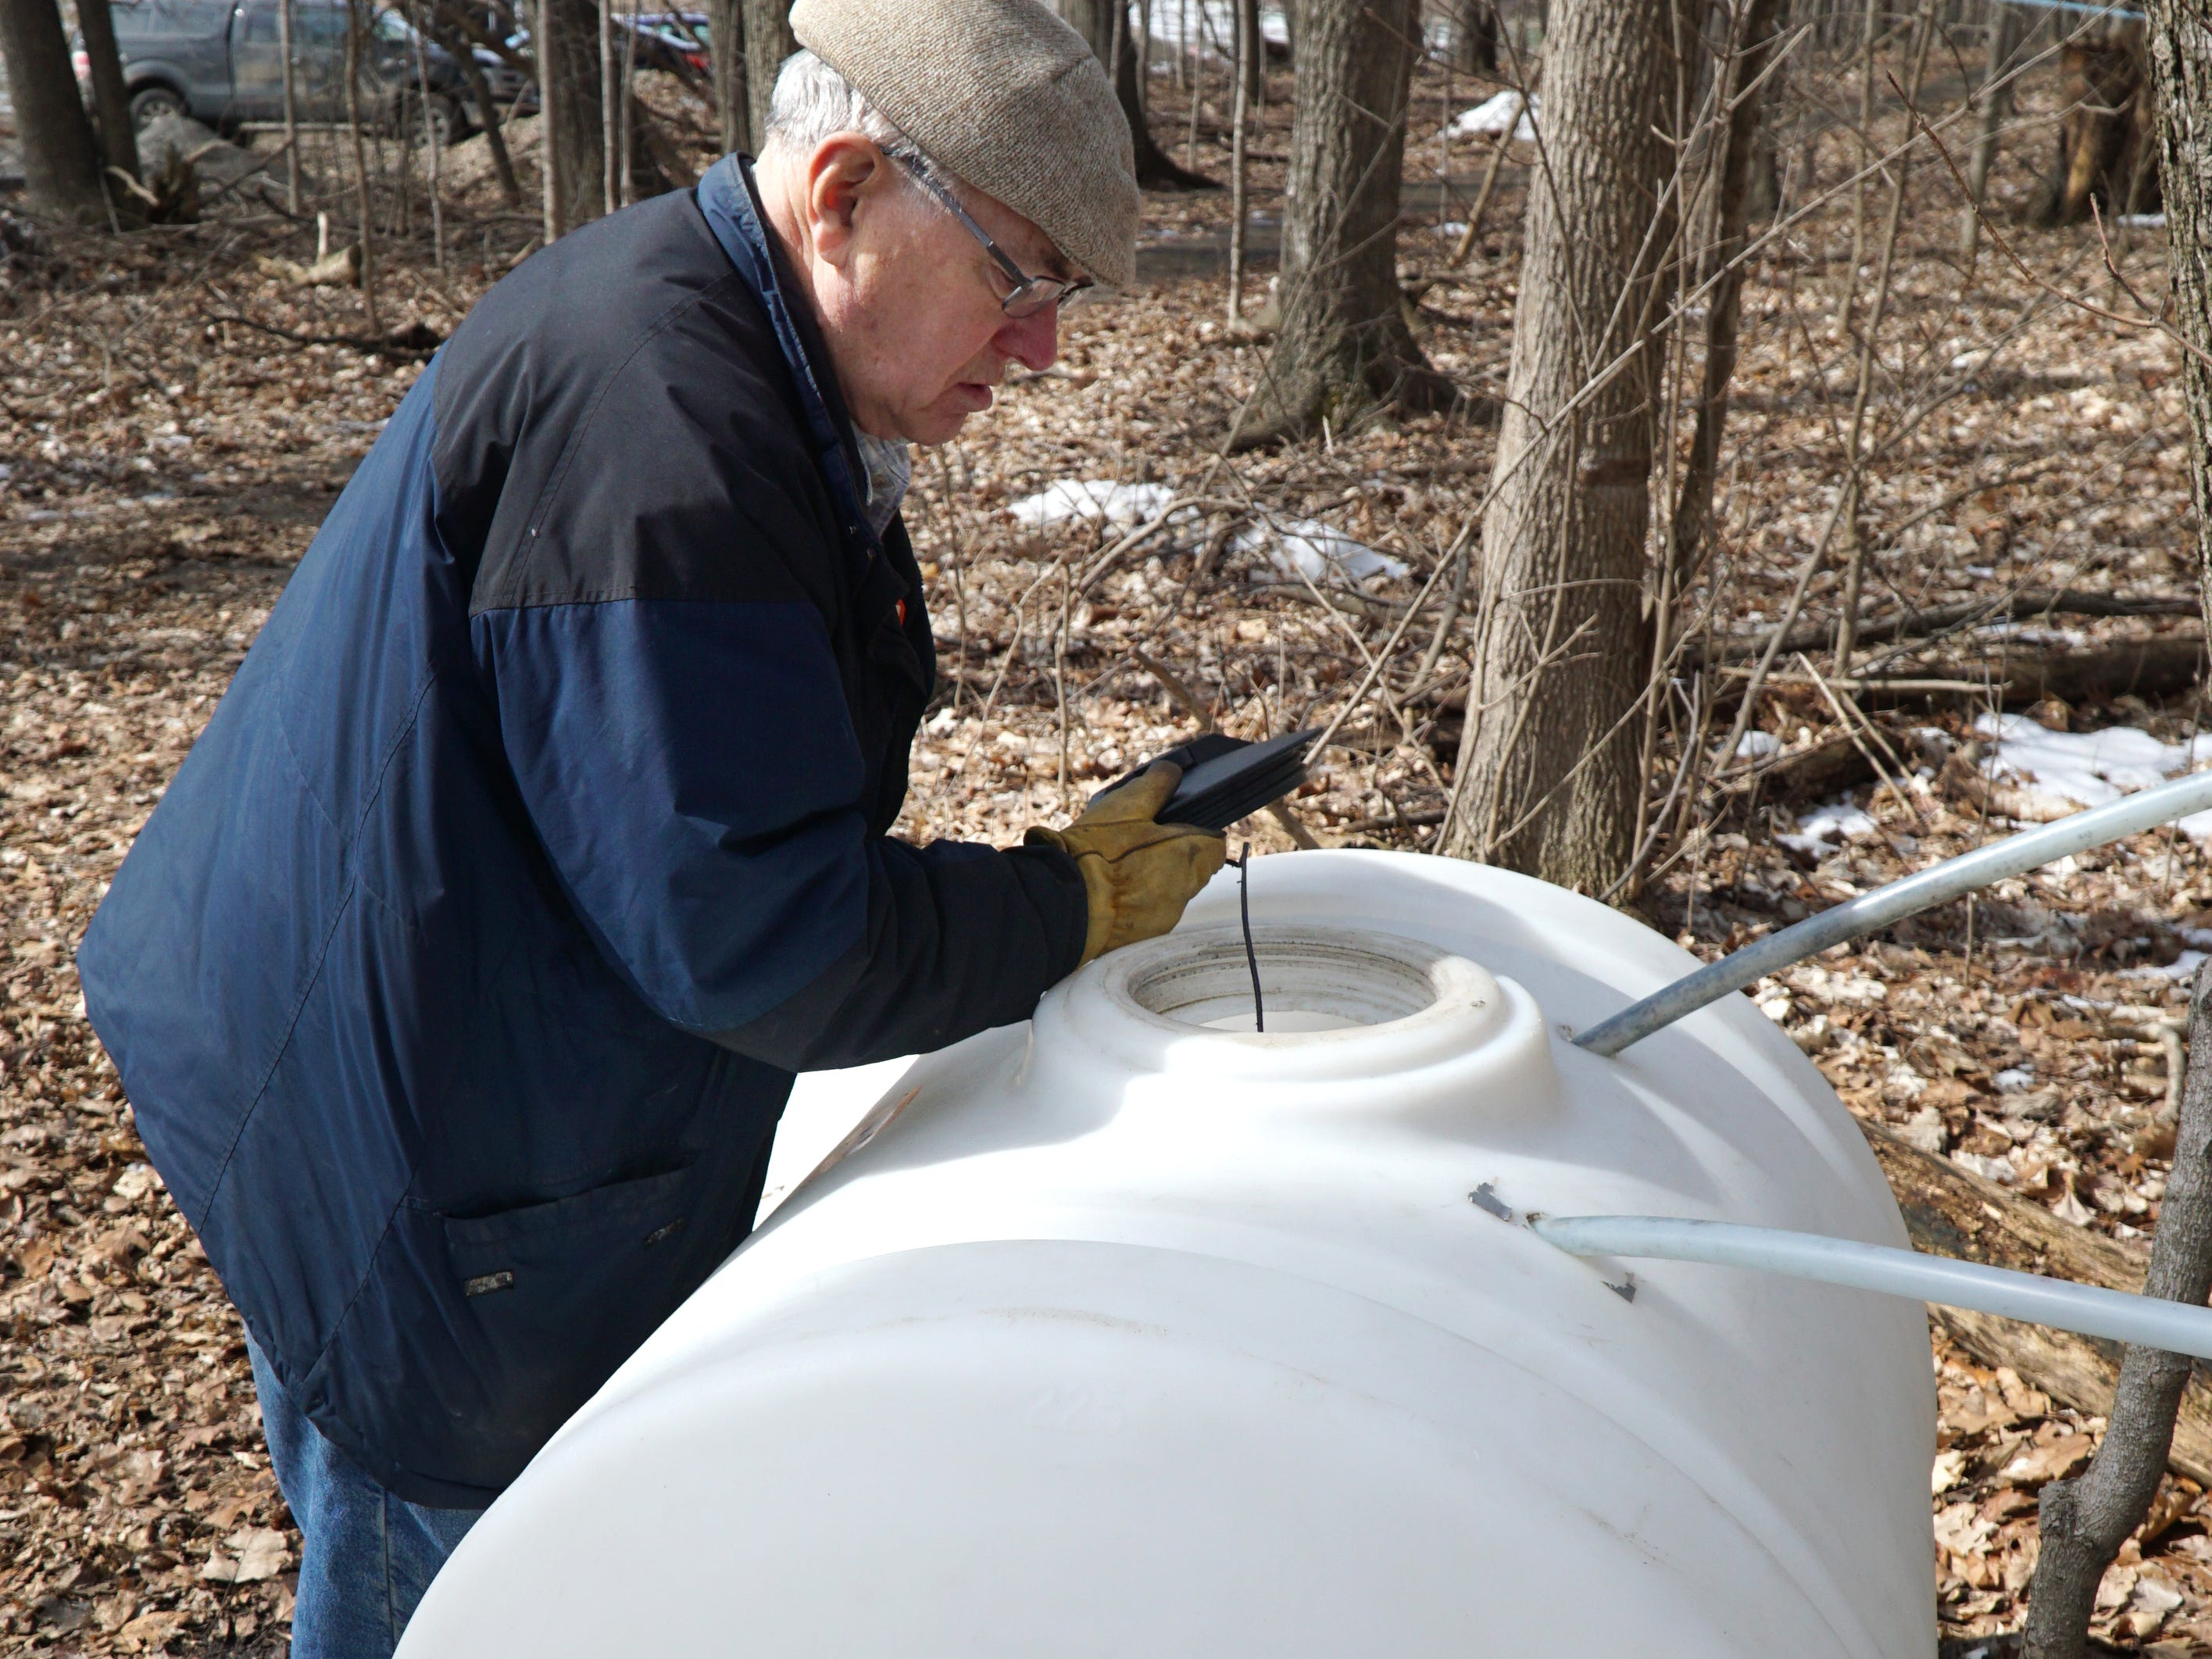 "John McInnis checks one of the storage tanks at Novi's Tollgate Farms' ""sugar bush"" area on March, 11. The sugar bush is where the farm has acres of maple trees that are tapped in later winter for their sap. McInnis has been part of the syrup production crew for more than two decades and began a Master Woodland Management Program at Tollgate to give students the experience of managing an active forest landscape. The sap in Tollgate's maple trees flows best when the nighttime temperatures are near freezing - but then warm during the day so that the sap can flow down to the taps."